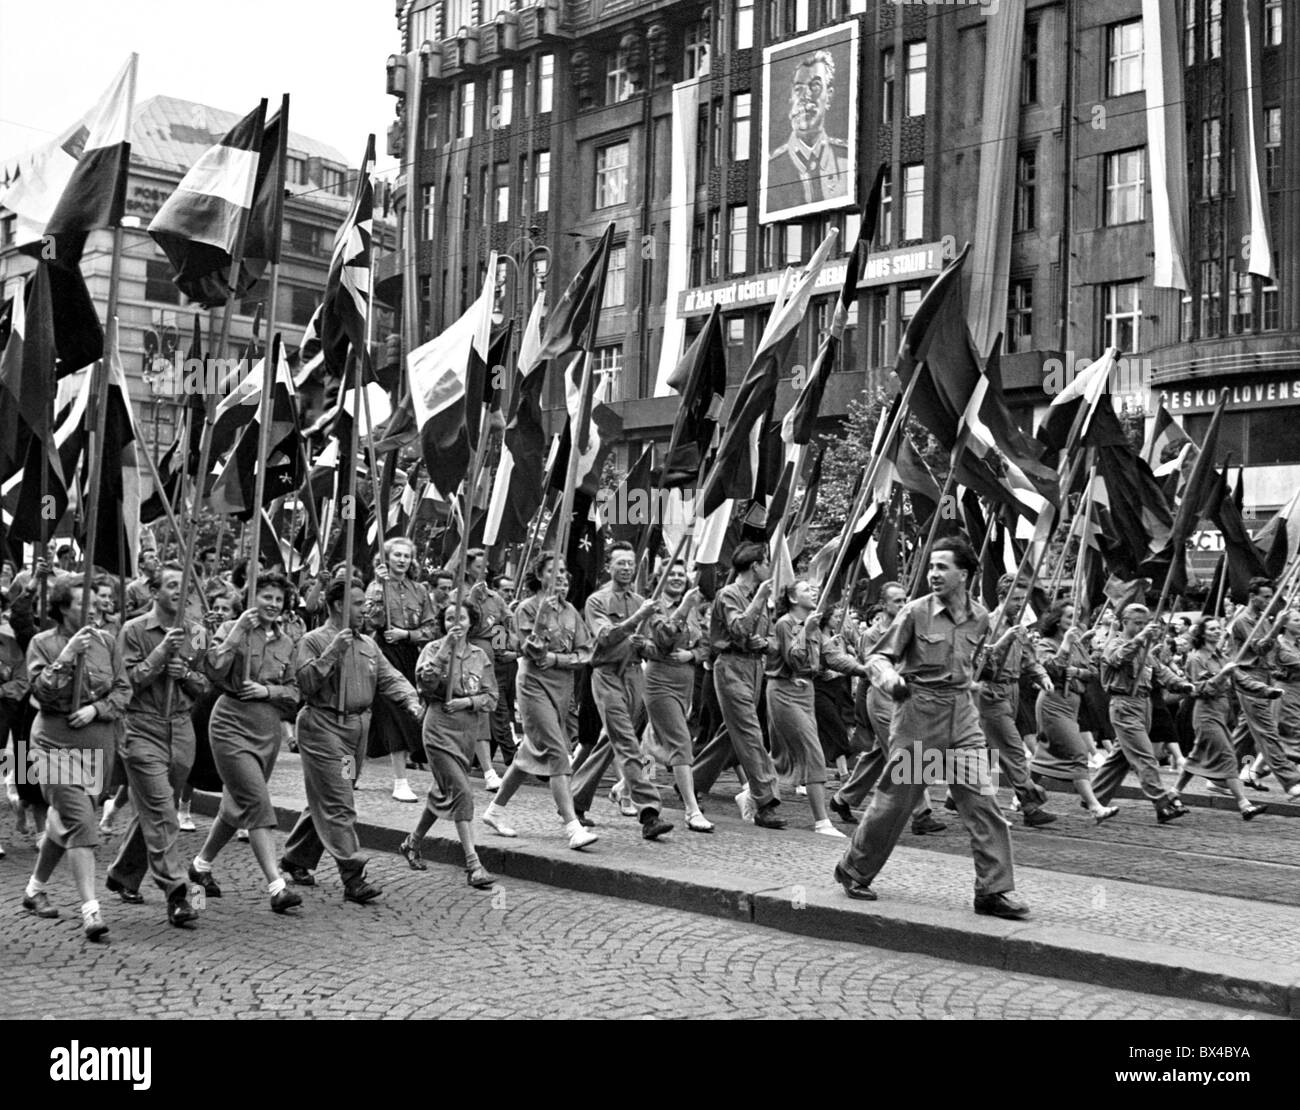 young Communists march on - Stock Image